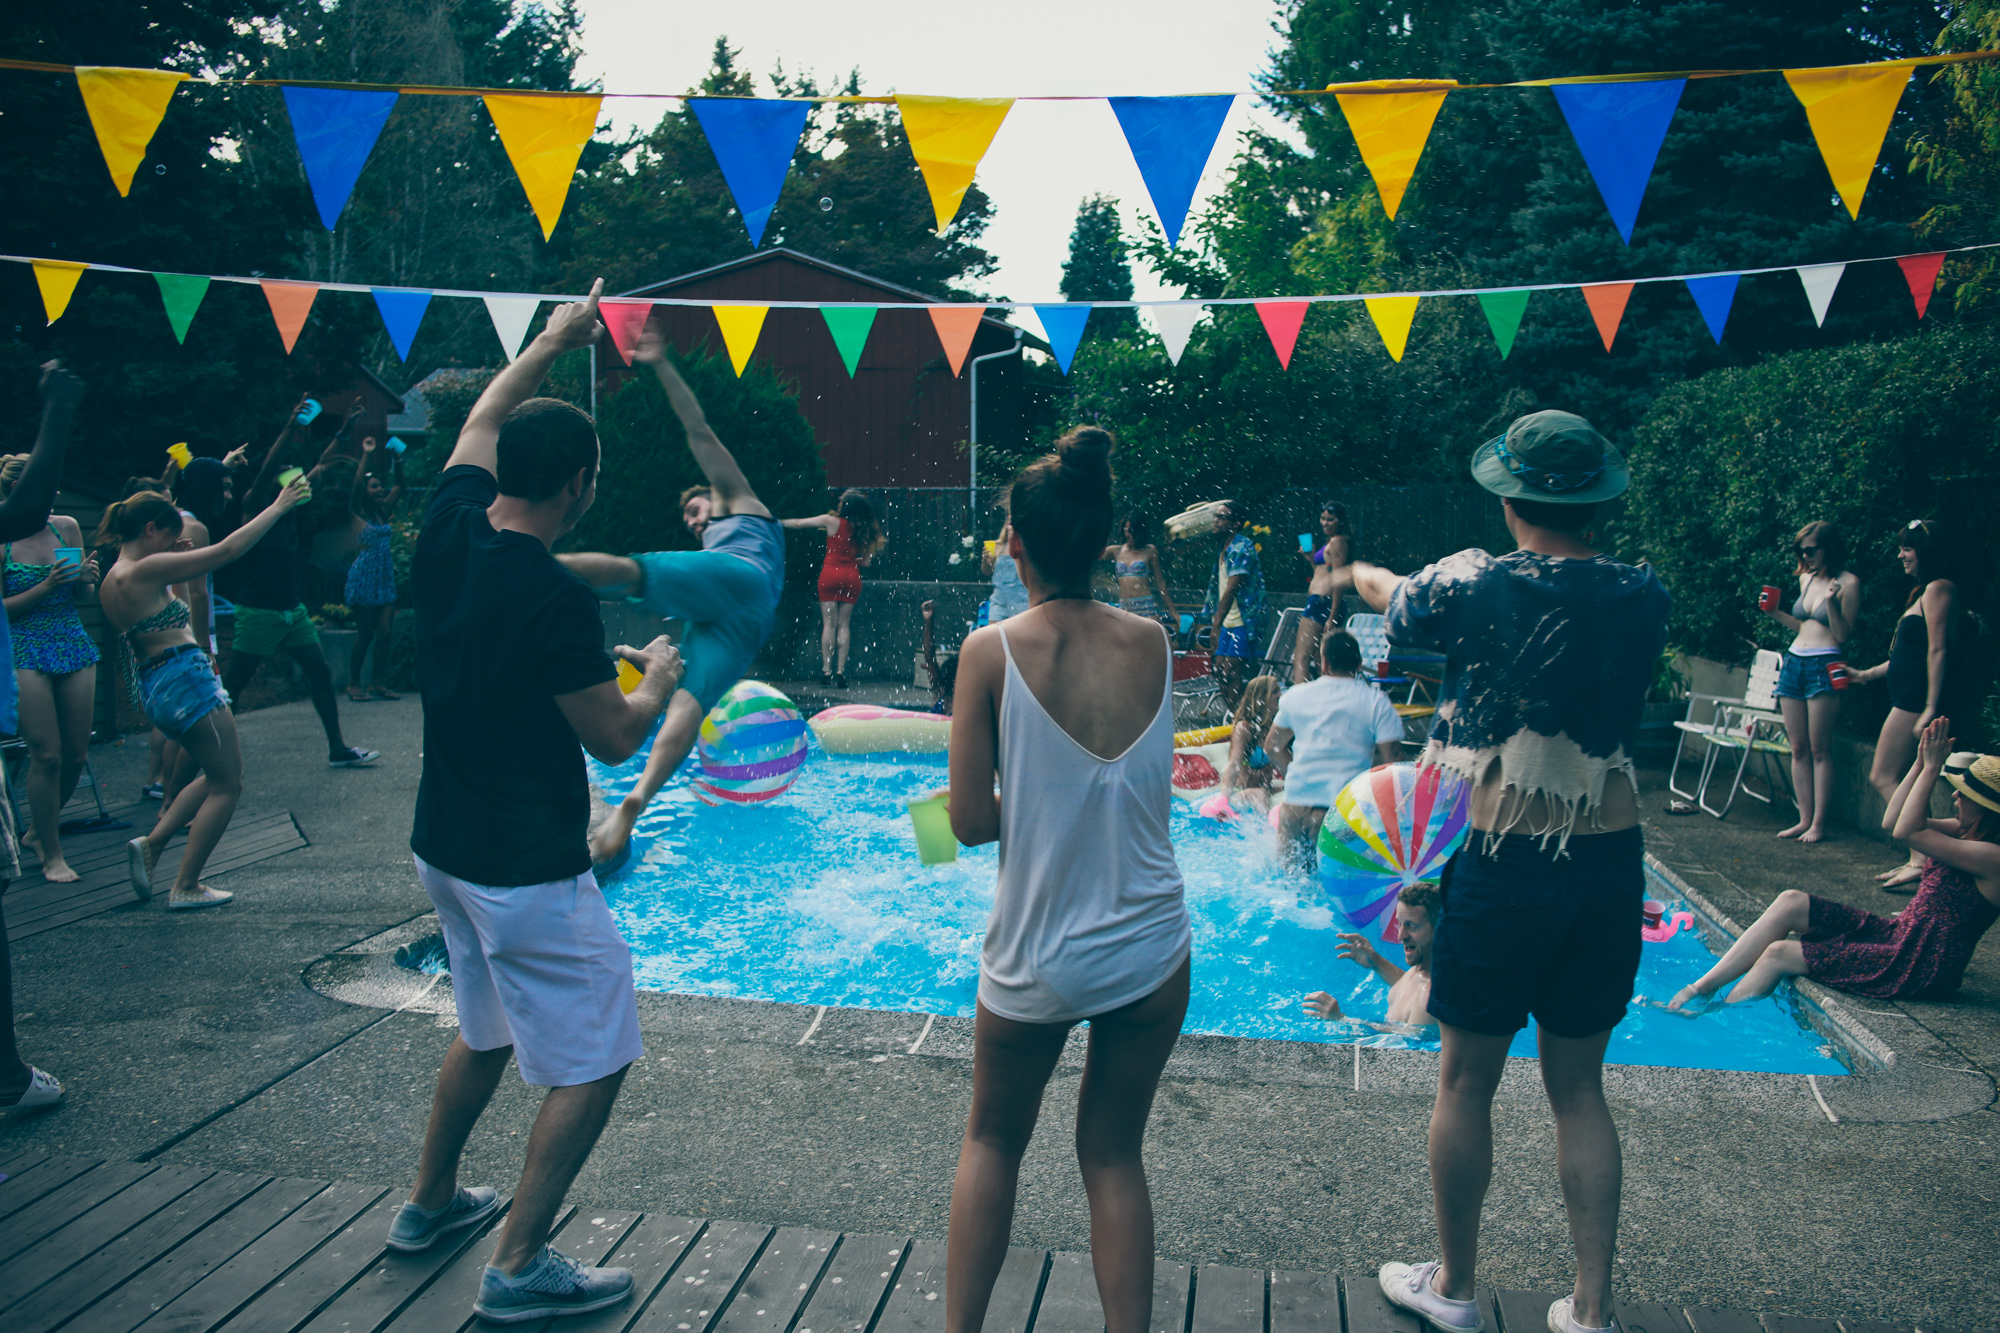 Vadio_pool_party-19.jpg